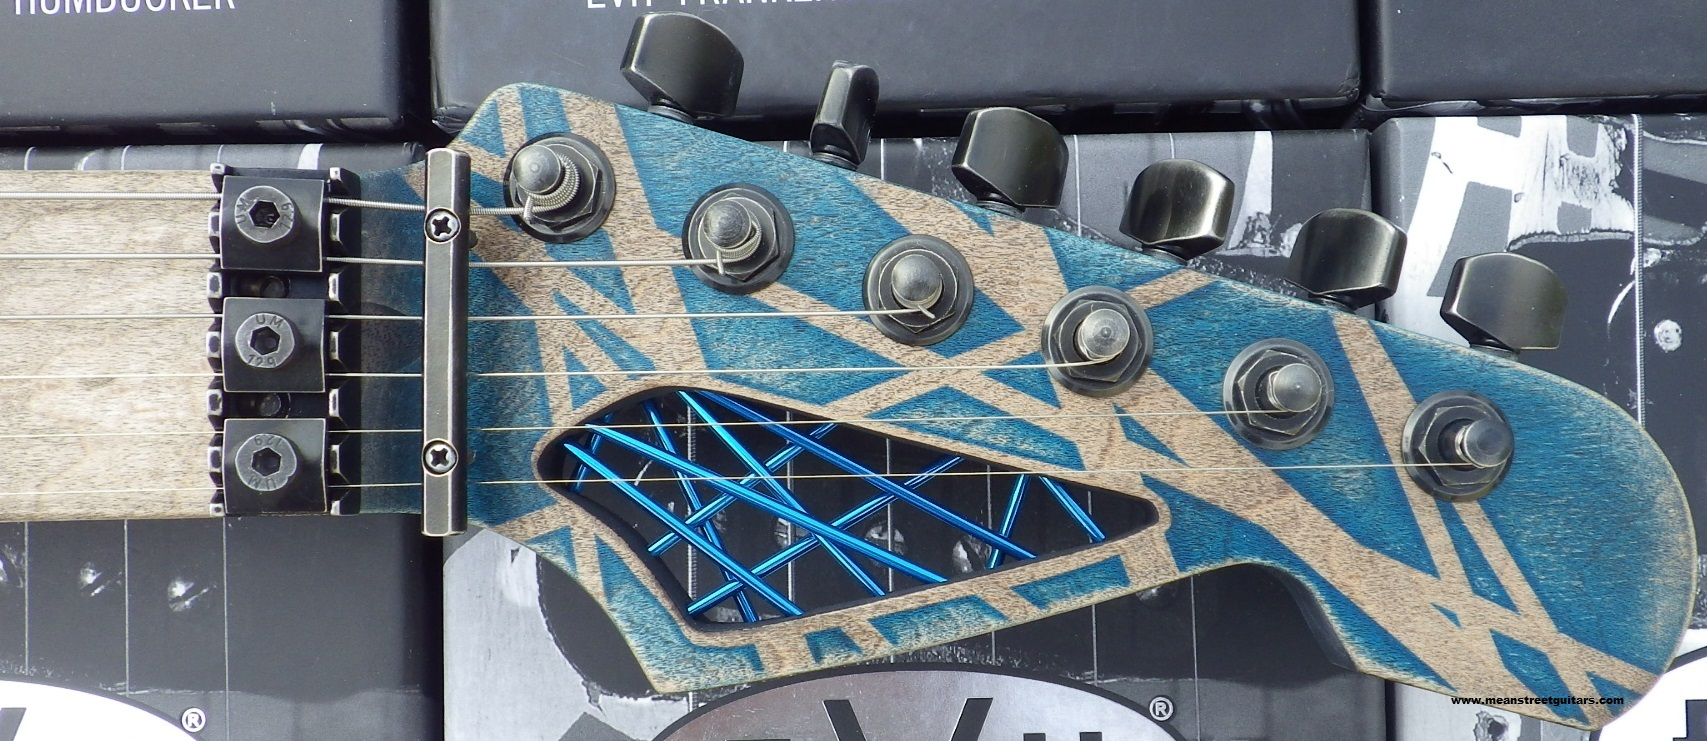 Mean Street Guitars Industrial 50 1 50 Pipeline Blue 002 pic 9.jpg